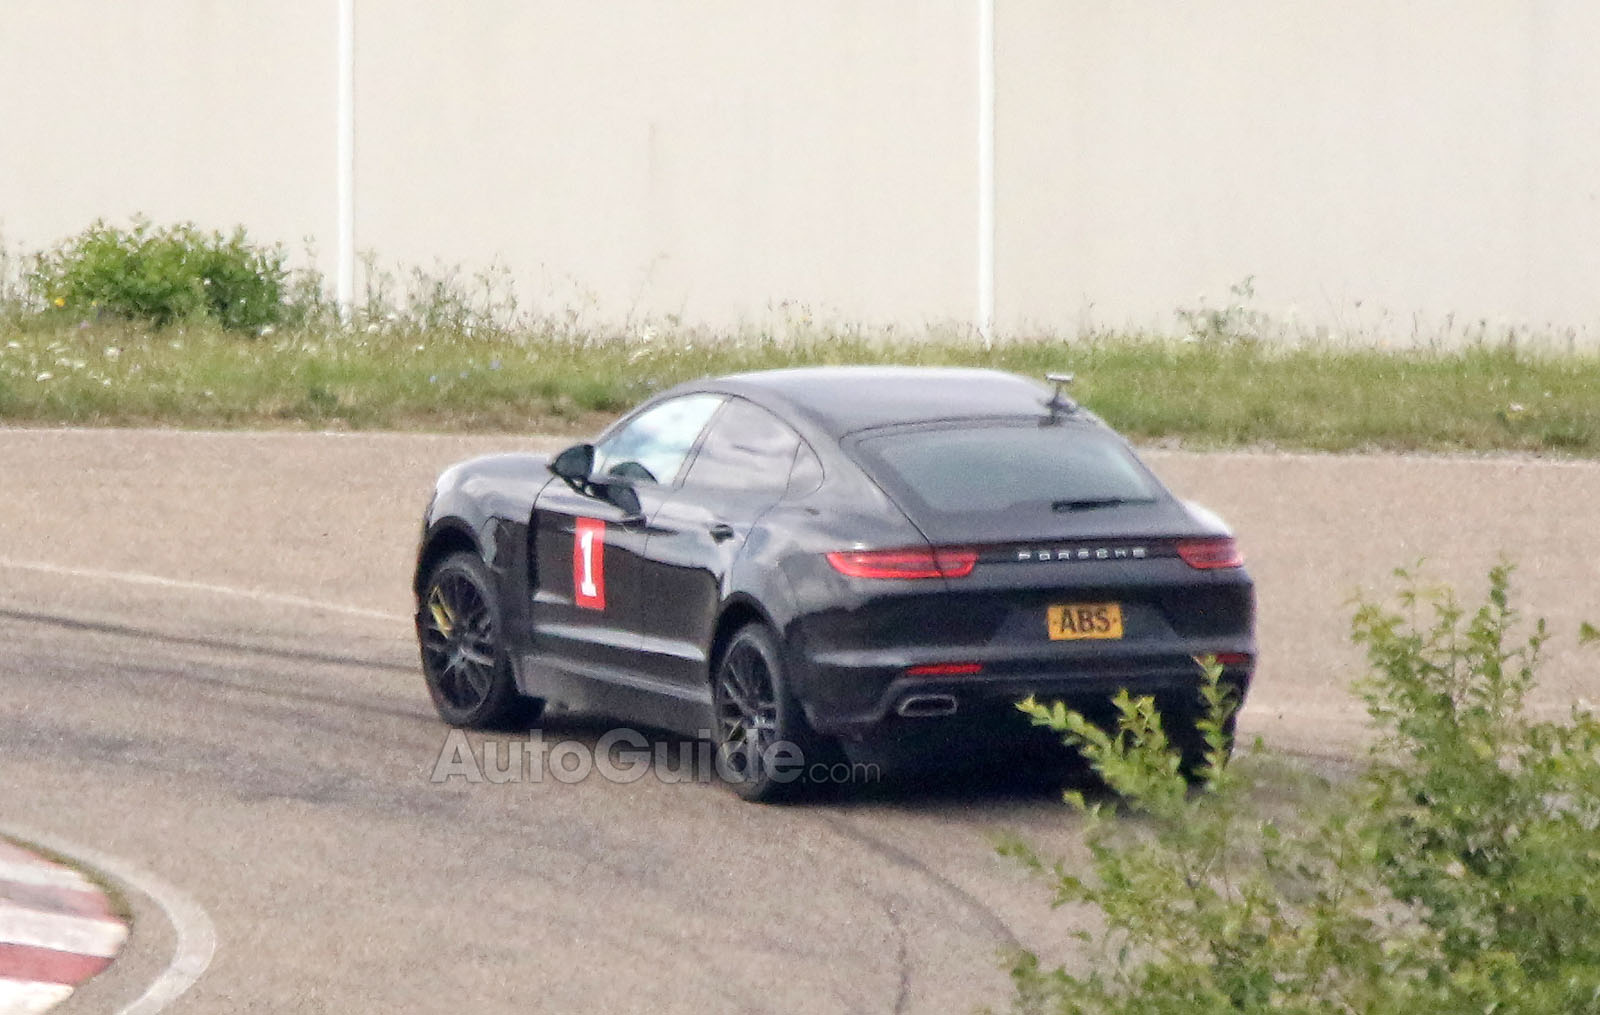 Porsche Cayenne Coupe Is Coming And We Have The Spy Photos